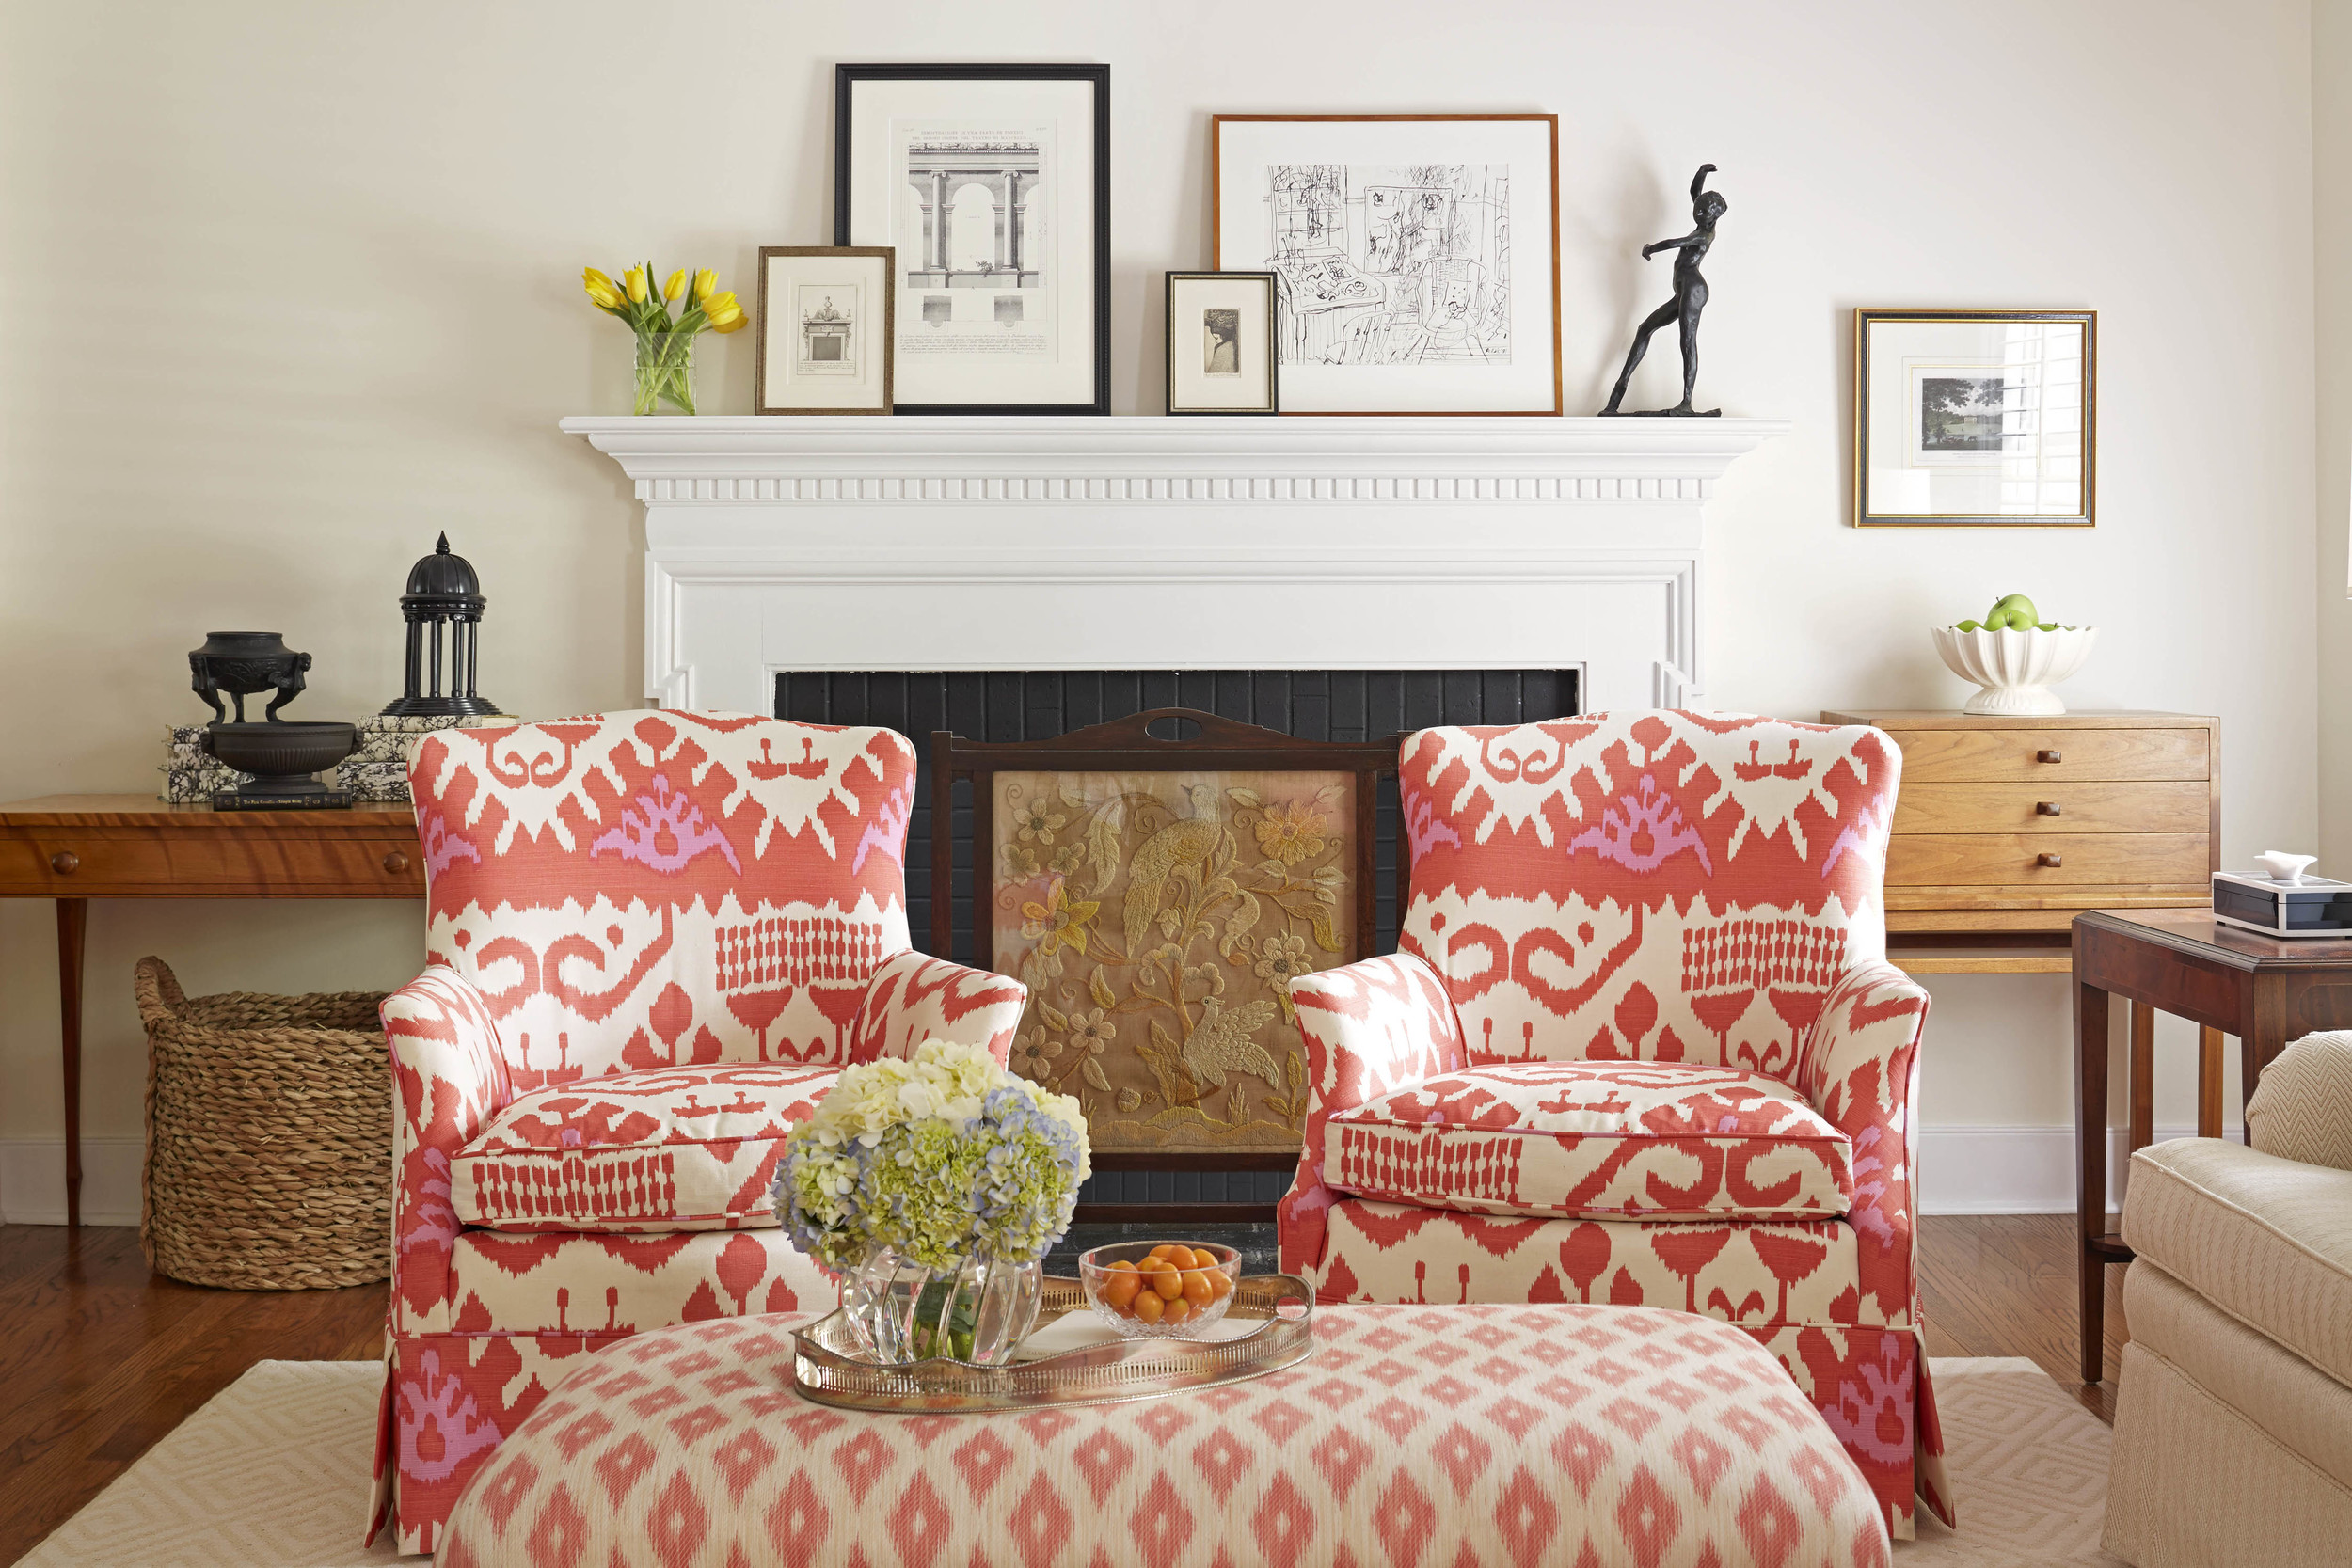 Quadrille Ikat in my favorite combination of pink and orange. The asymmetrical collection of prints creates a visual flow on the mantle and the Degas Ballet Dancer and Wedgewood Basalt pieces create visual balance within the composition.